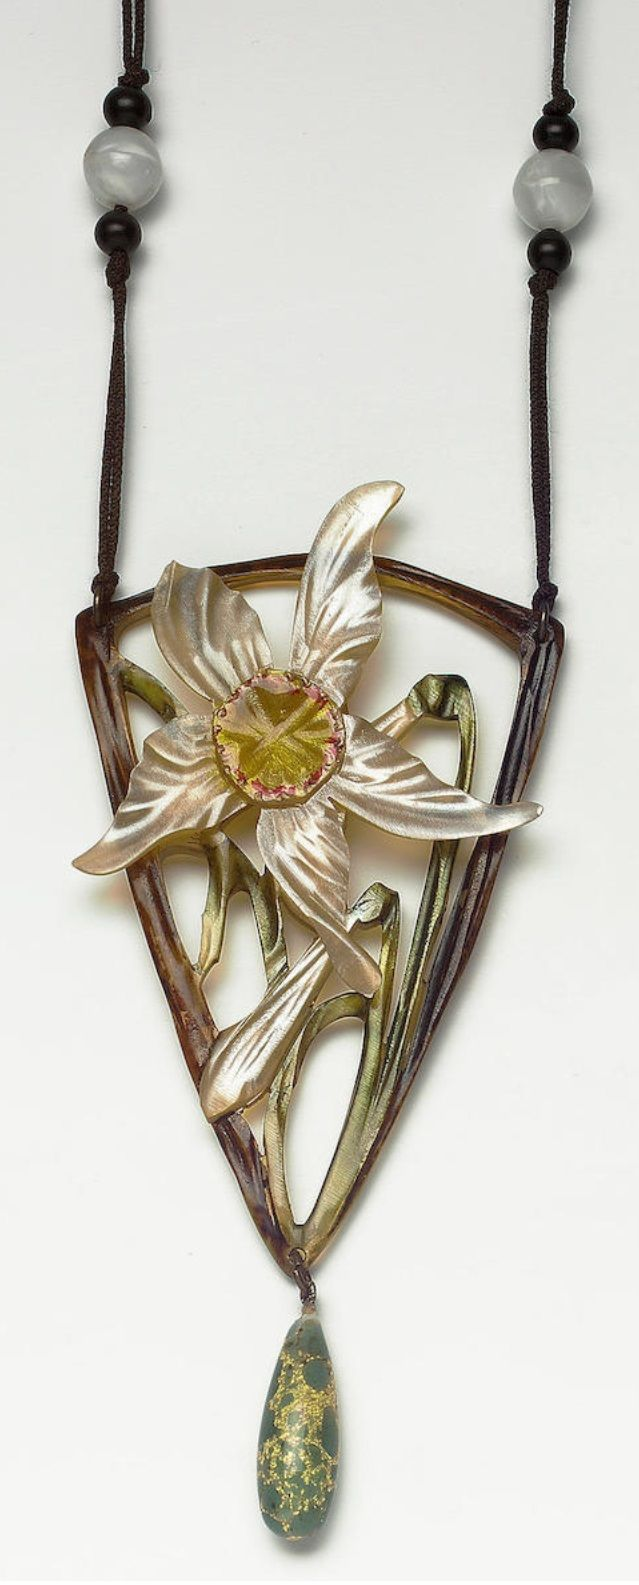 An Art Nouveau carved horn pendant necklace, by Elizabeth Bonté, circa 1900. A Carved Horn Pendant Necklace in the form of Narcissi coloured white, green and yellow, within a triangular framework, with mottled green and yellow glass pendant bead, the cord with matching and opalescent white beads pendant 10cm long, signed on reverse. #Bonte #ArtNouveau #pendant #necklace